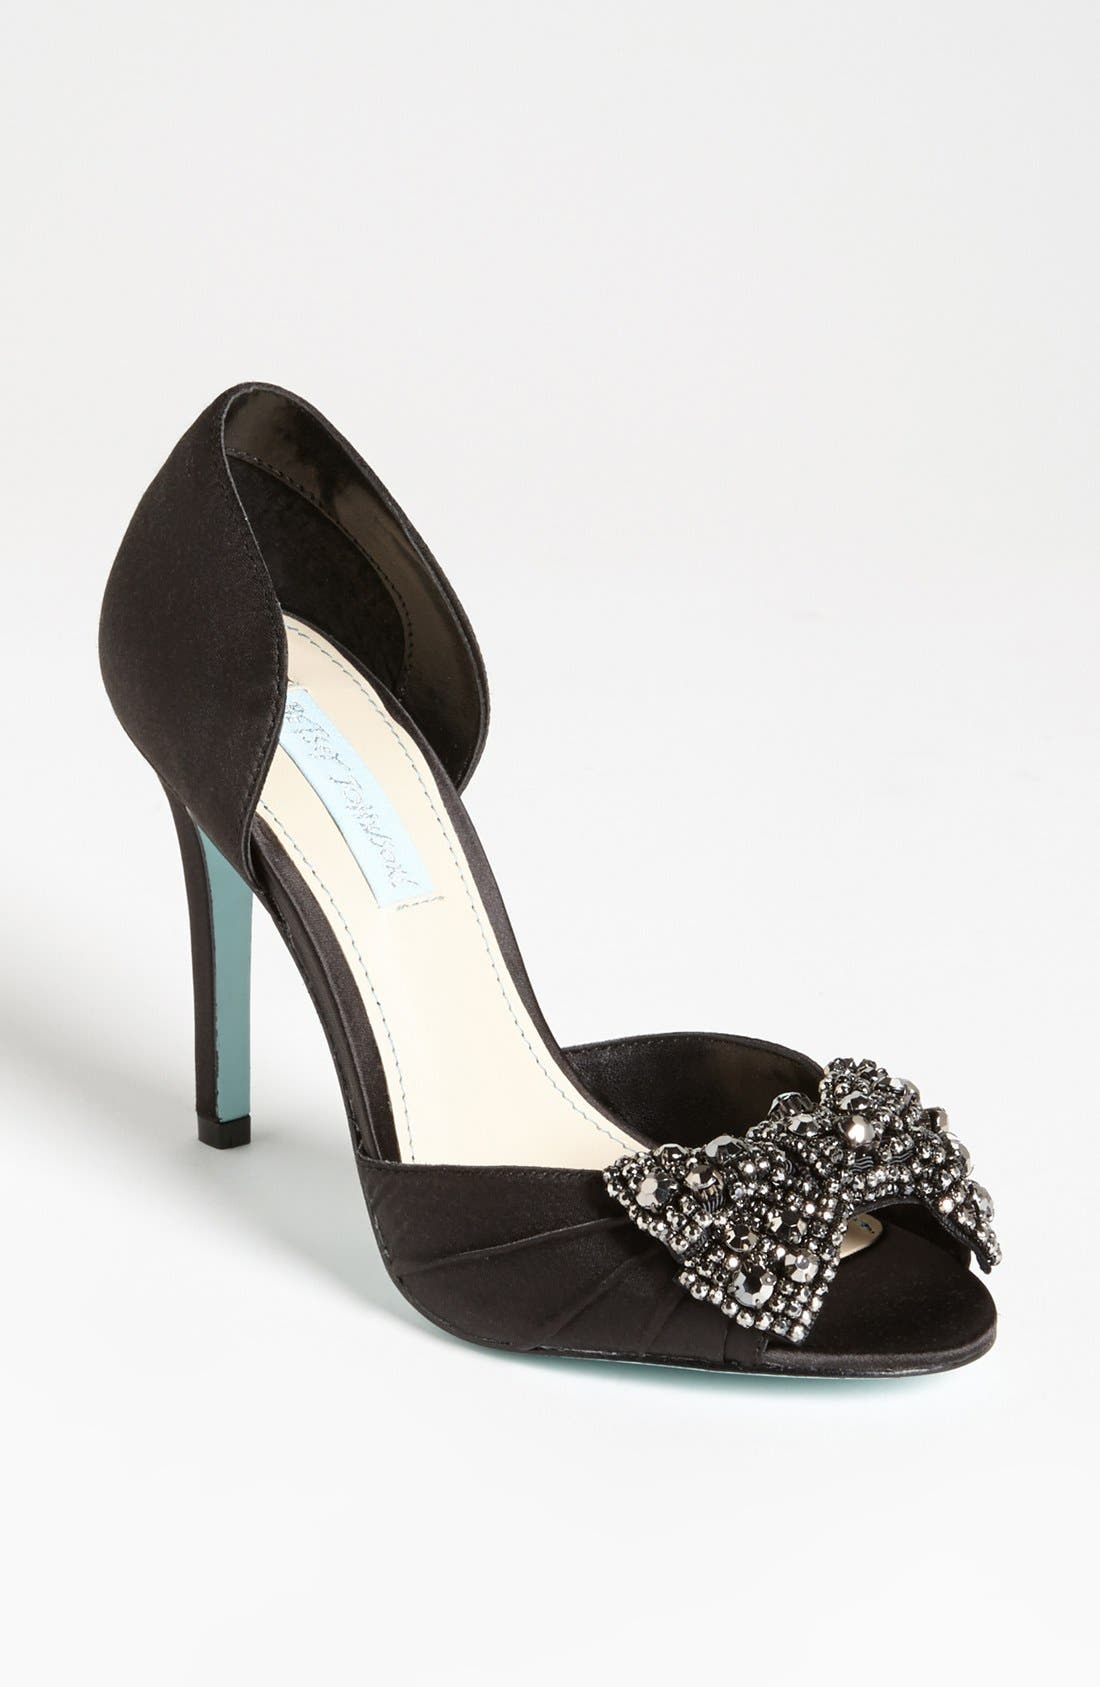 Alternate Image 1 Selected - Blue by Betsey Johnson 'Gown' Sandal